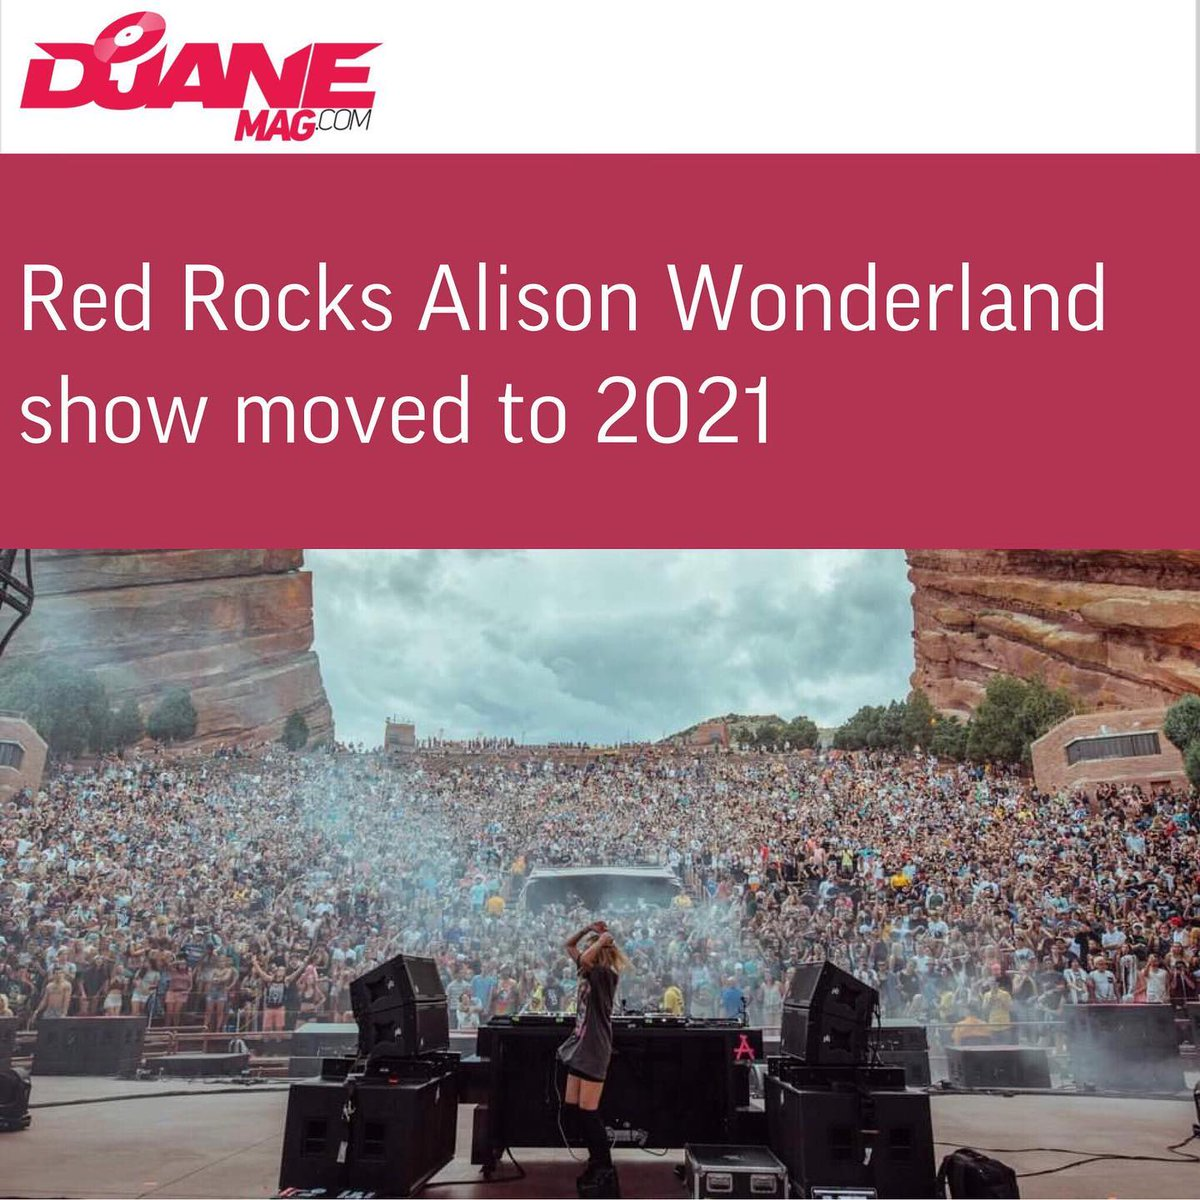 """Highly-anticipated Alison Wonderland shows at Red Rocks amphitheatre were moved to 2021.  Alison shared this sad news via her socials.  """"I am super sad about this announcement BUT your safety comes first...  More: https://djanemag.com/news/red-rocks-alison-wonderland-show-moved-2021…pic.twitter.com/vbsFtzyyv1"""